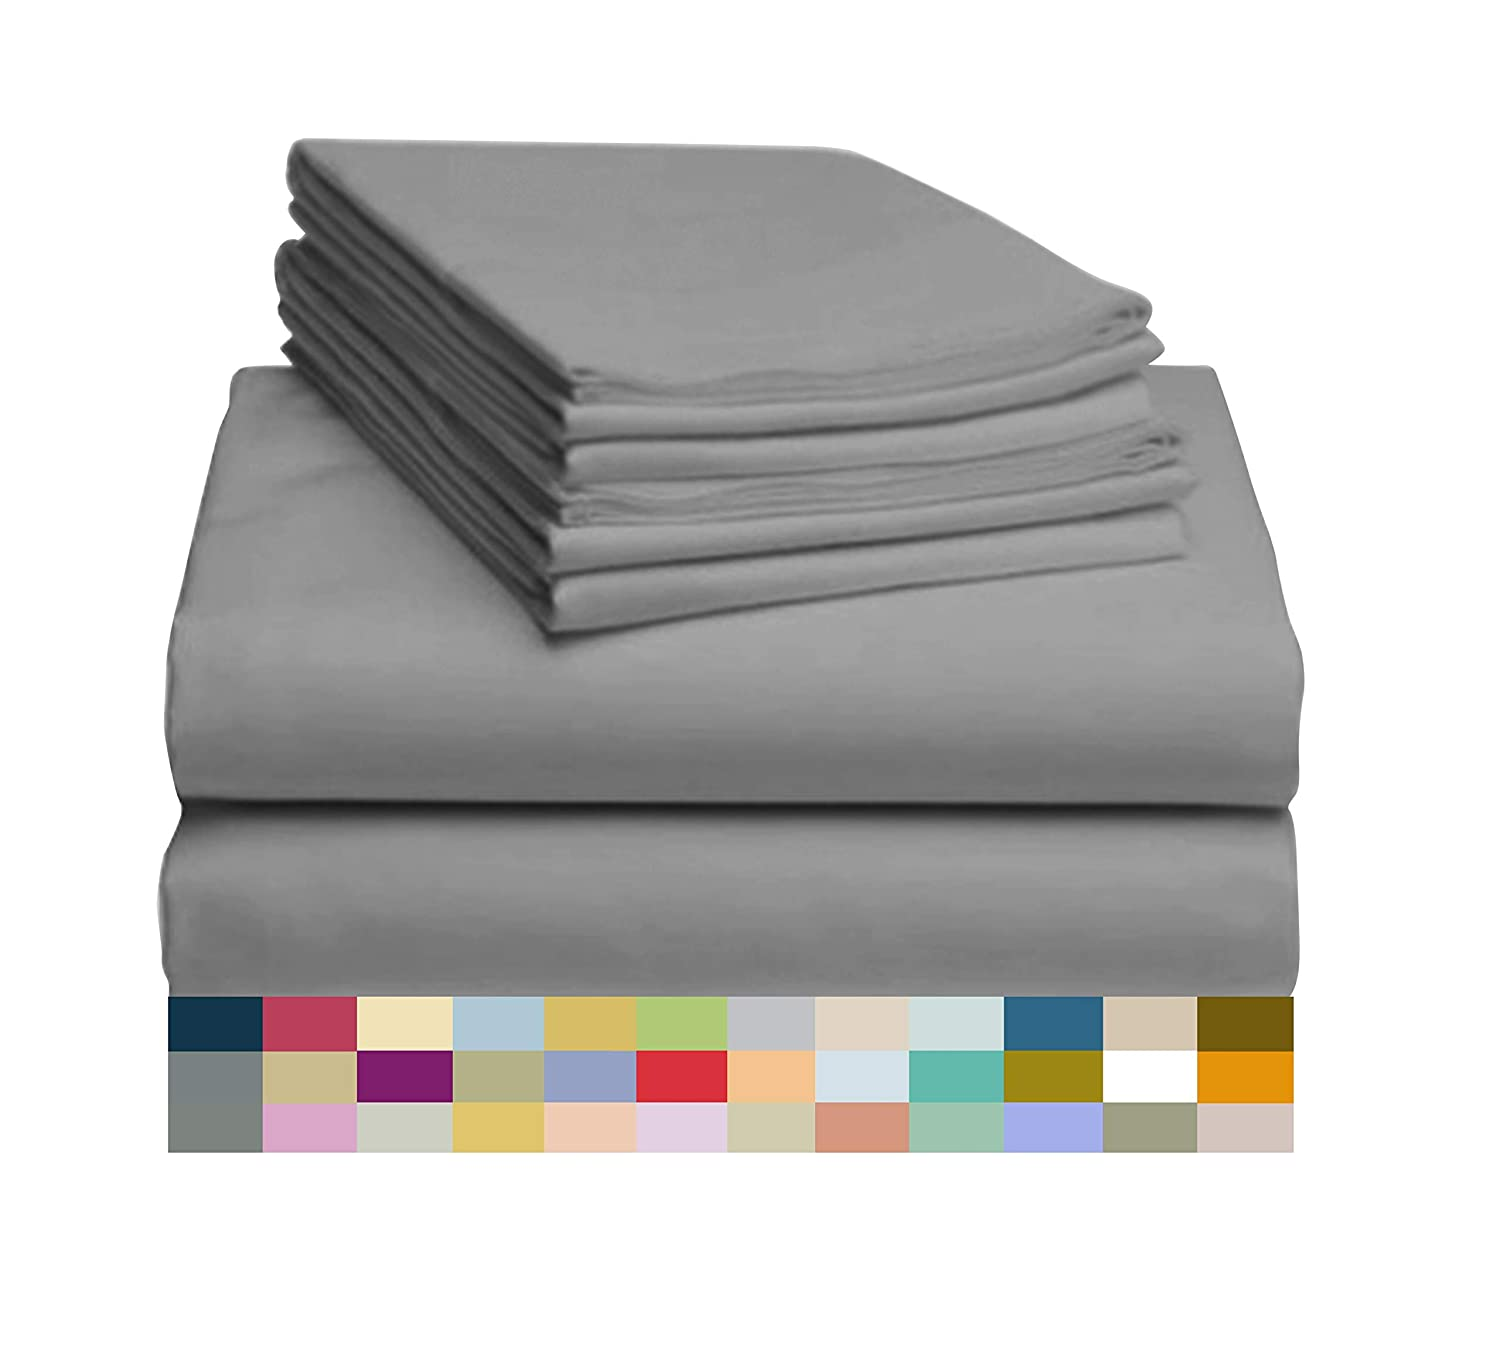 "LuxClub 6 PC Sheet Set Bamboo Sheets Deep Pockets 18"" Eco Friendly Wrinkle Free Sheets Hypoallergenic Anti-Bacteria Machine Washable Hotel Bedding Silky Soft - Light Grey Queen"